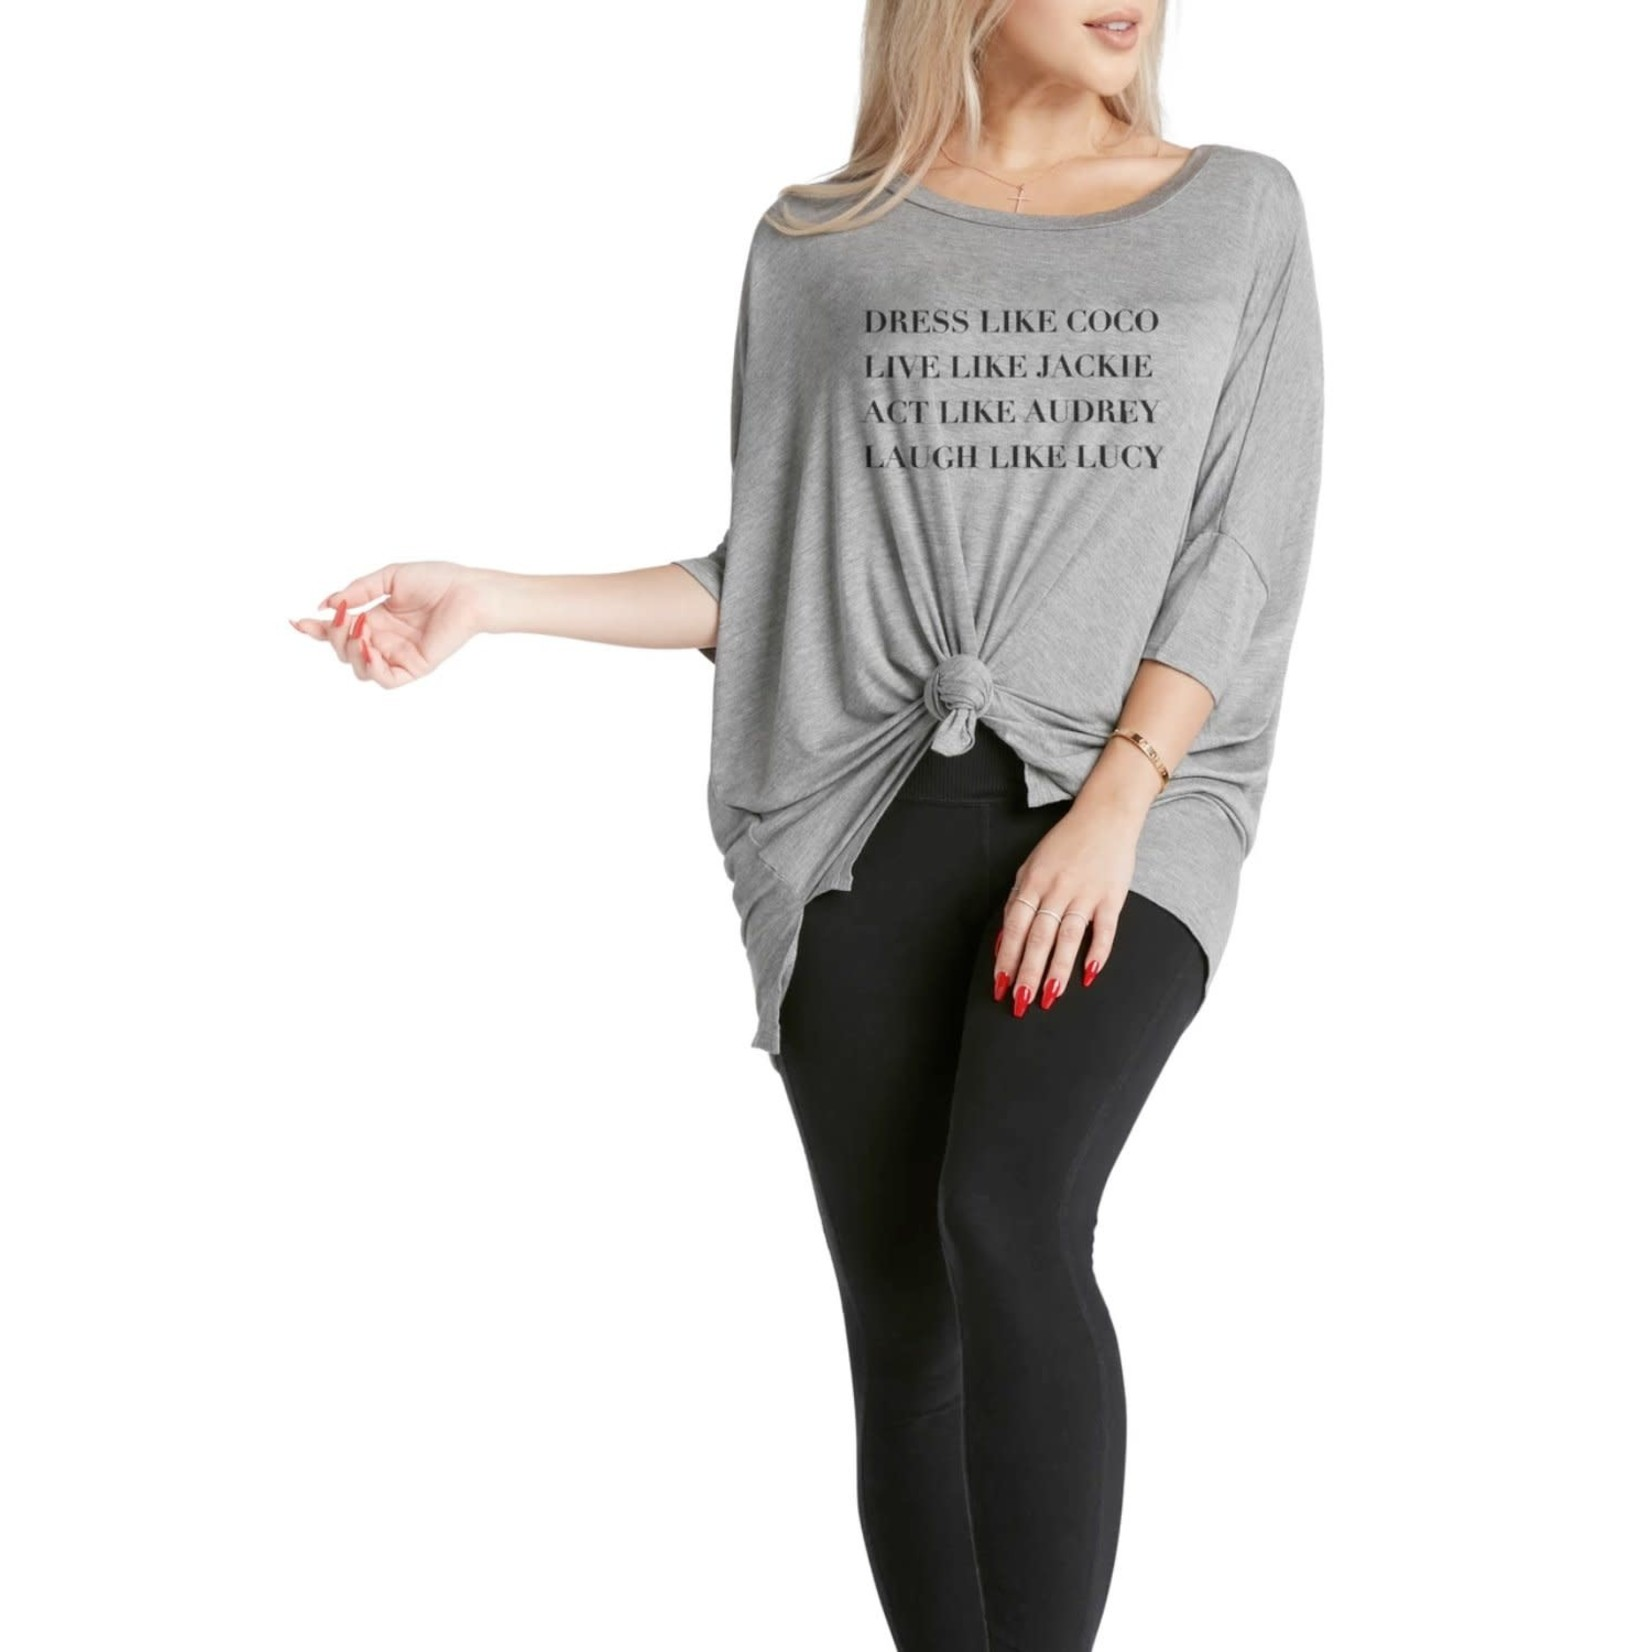 Los Angeles Trading Co Dress Like Coco One-Size Tee in Grey